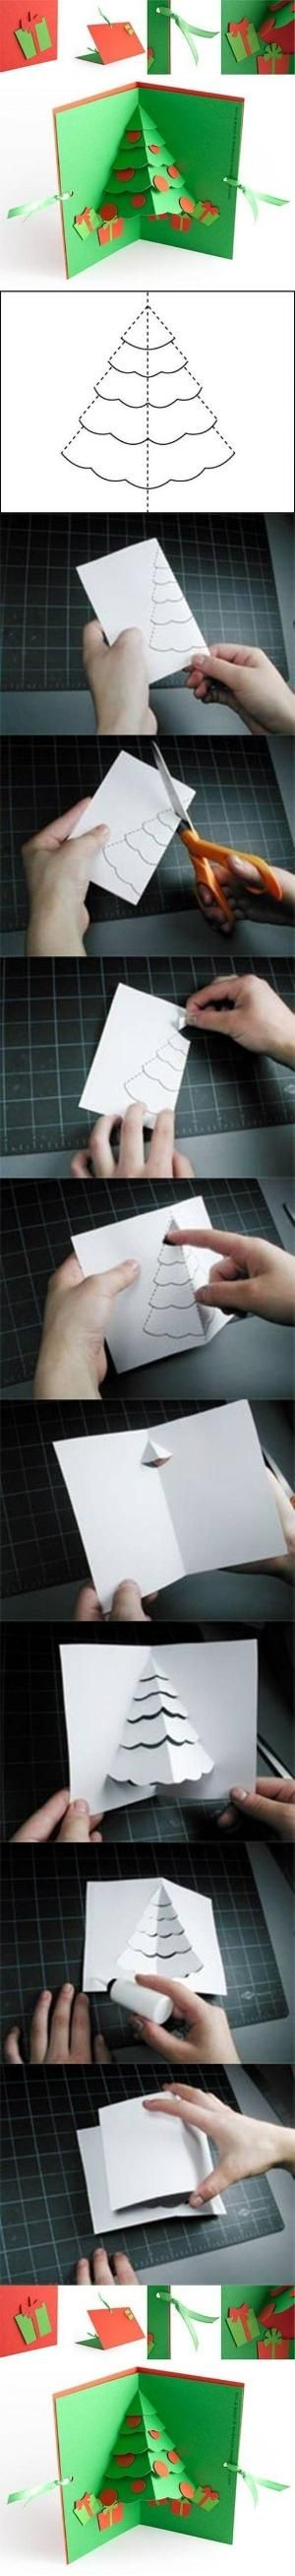 How to make Christmas Tree Pop Up Card step by step DIY by jewel